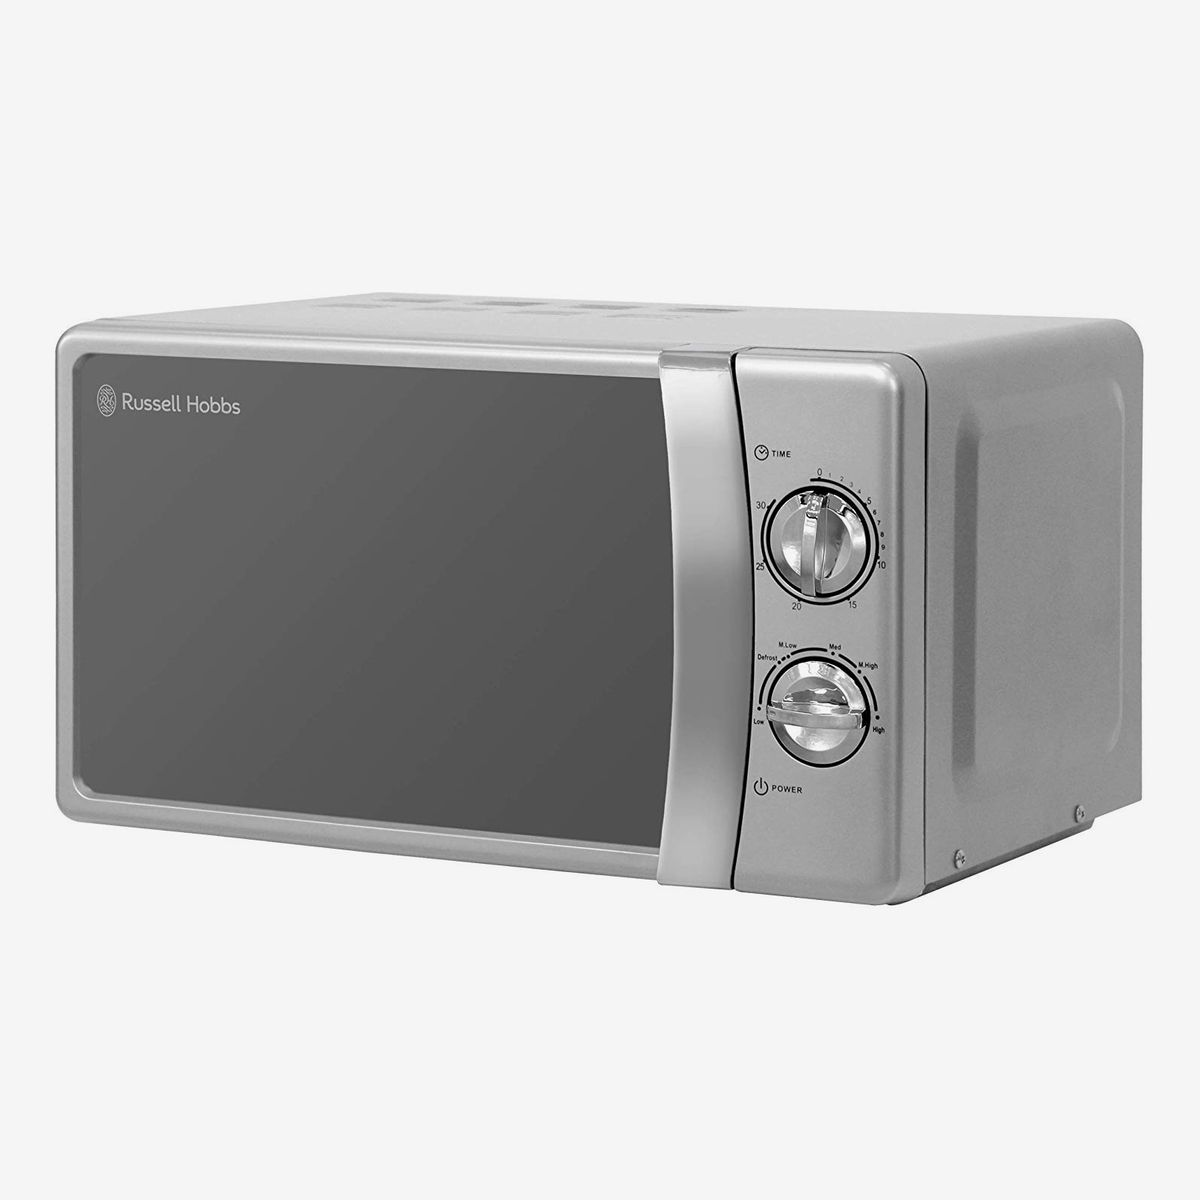 aesthetically pleasing microwave